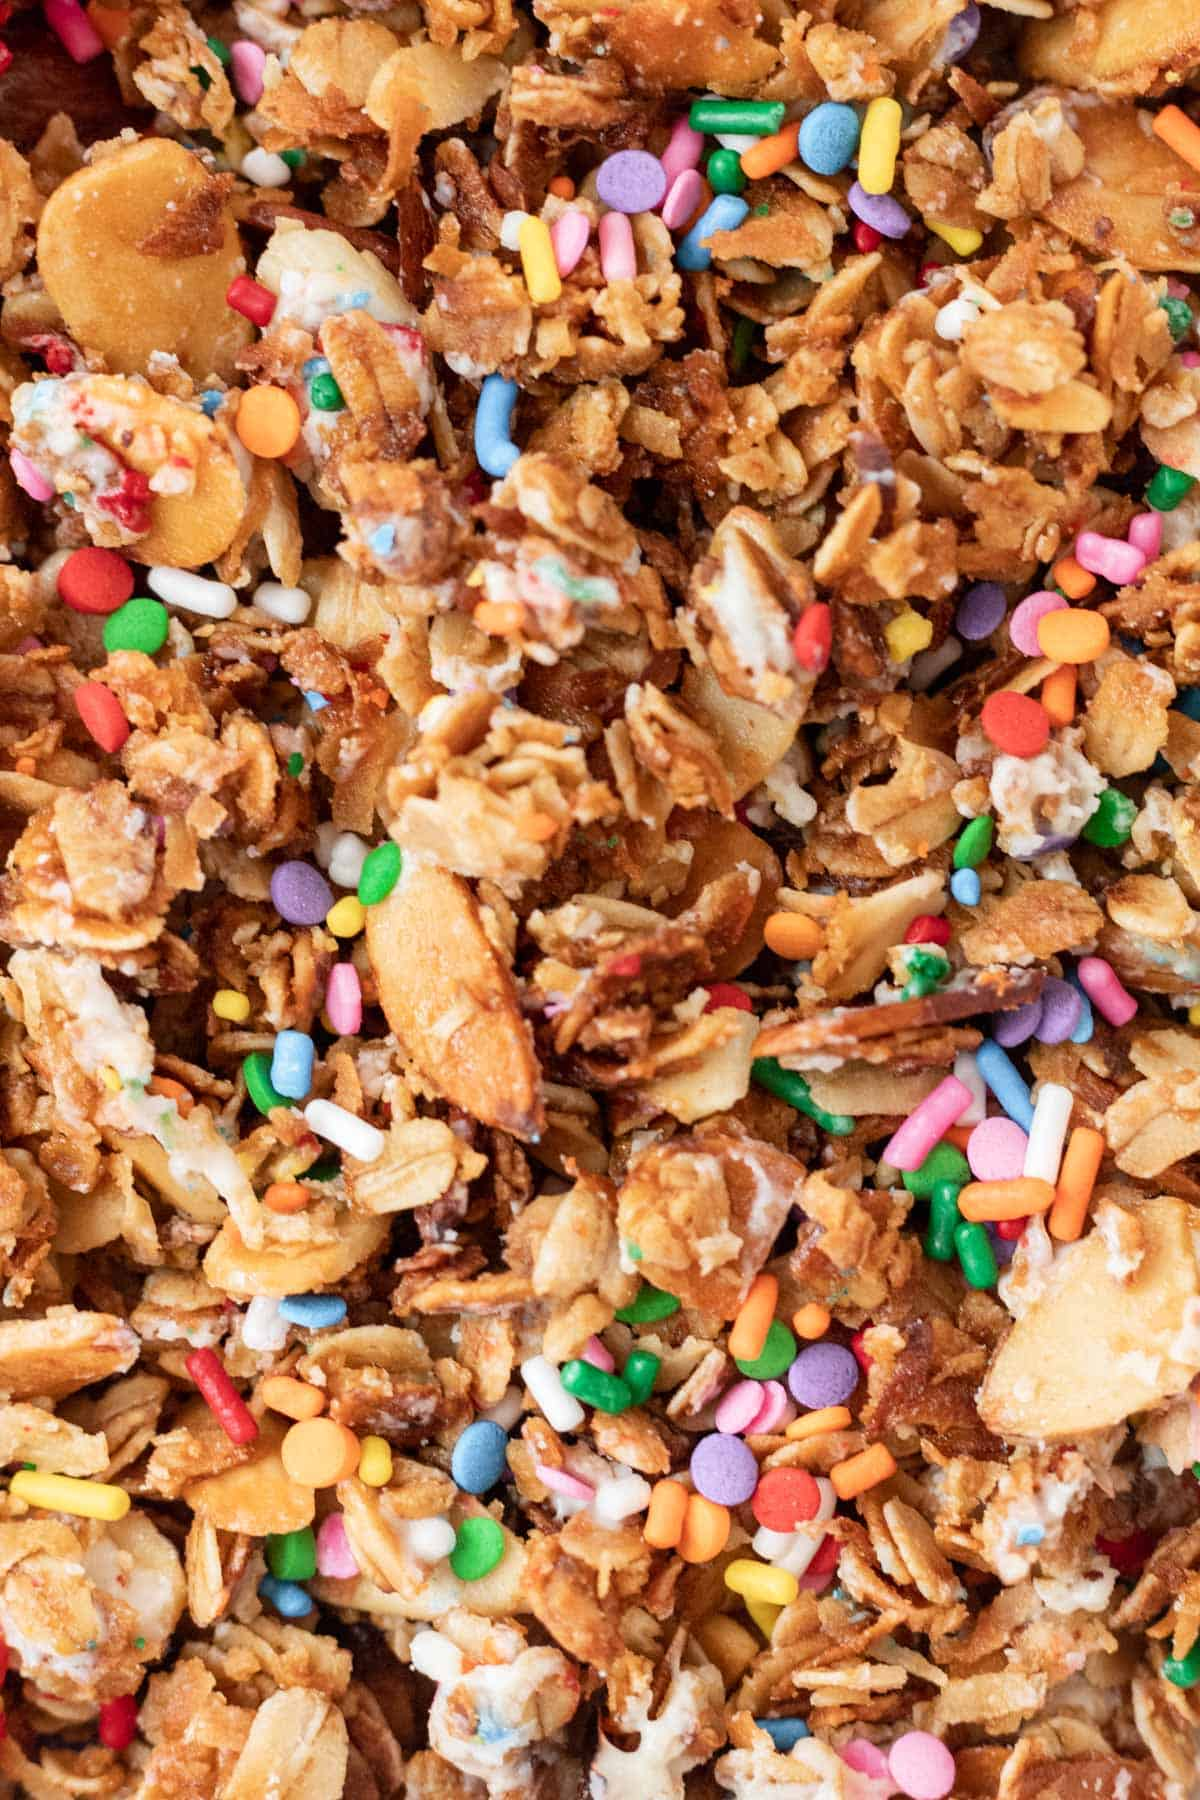 A closeup of baked granola with melted white chocolate and rainbow sprinkles.